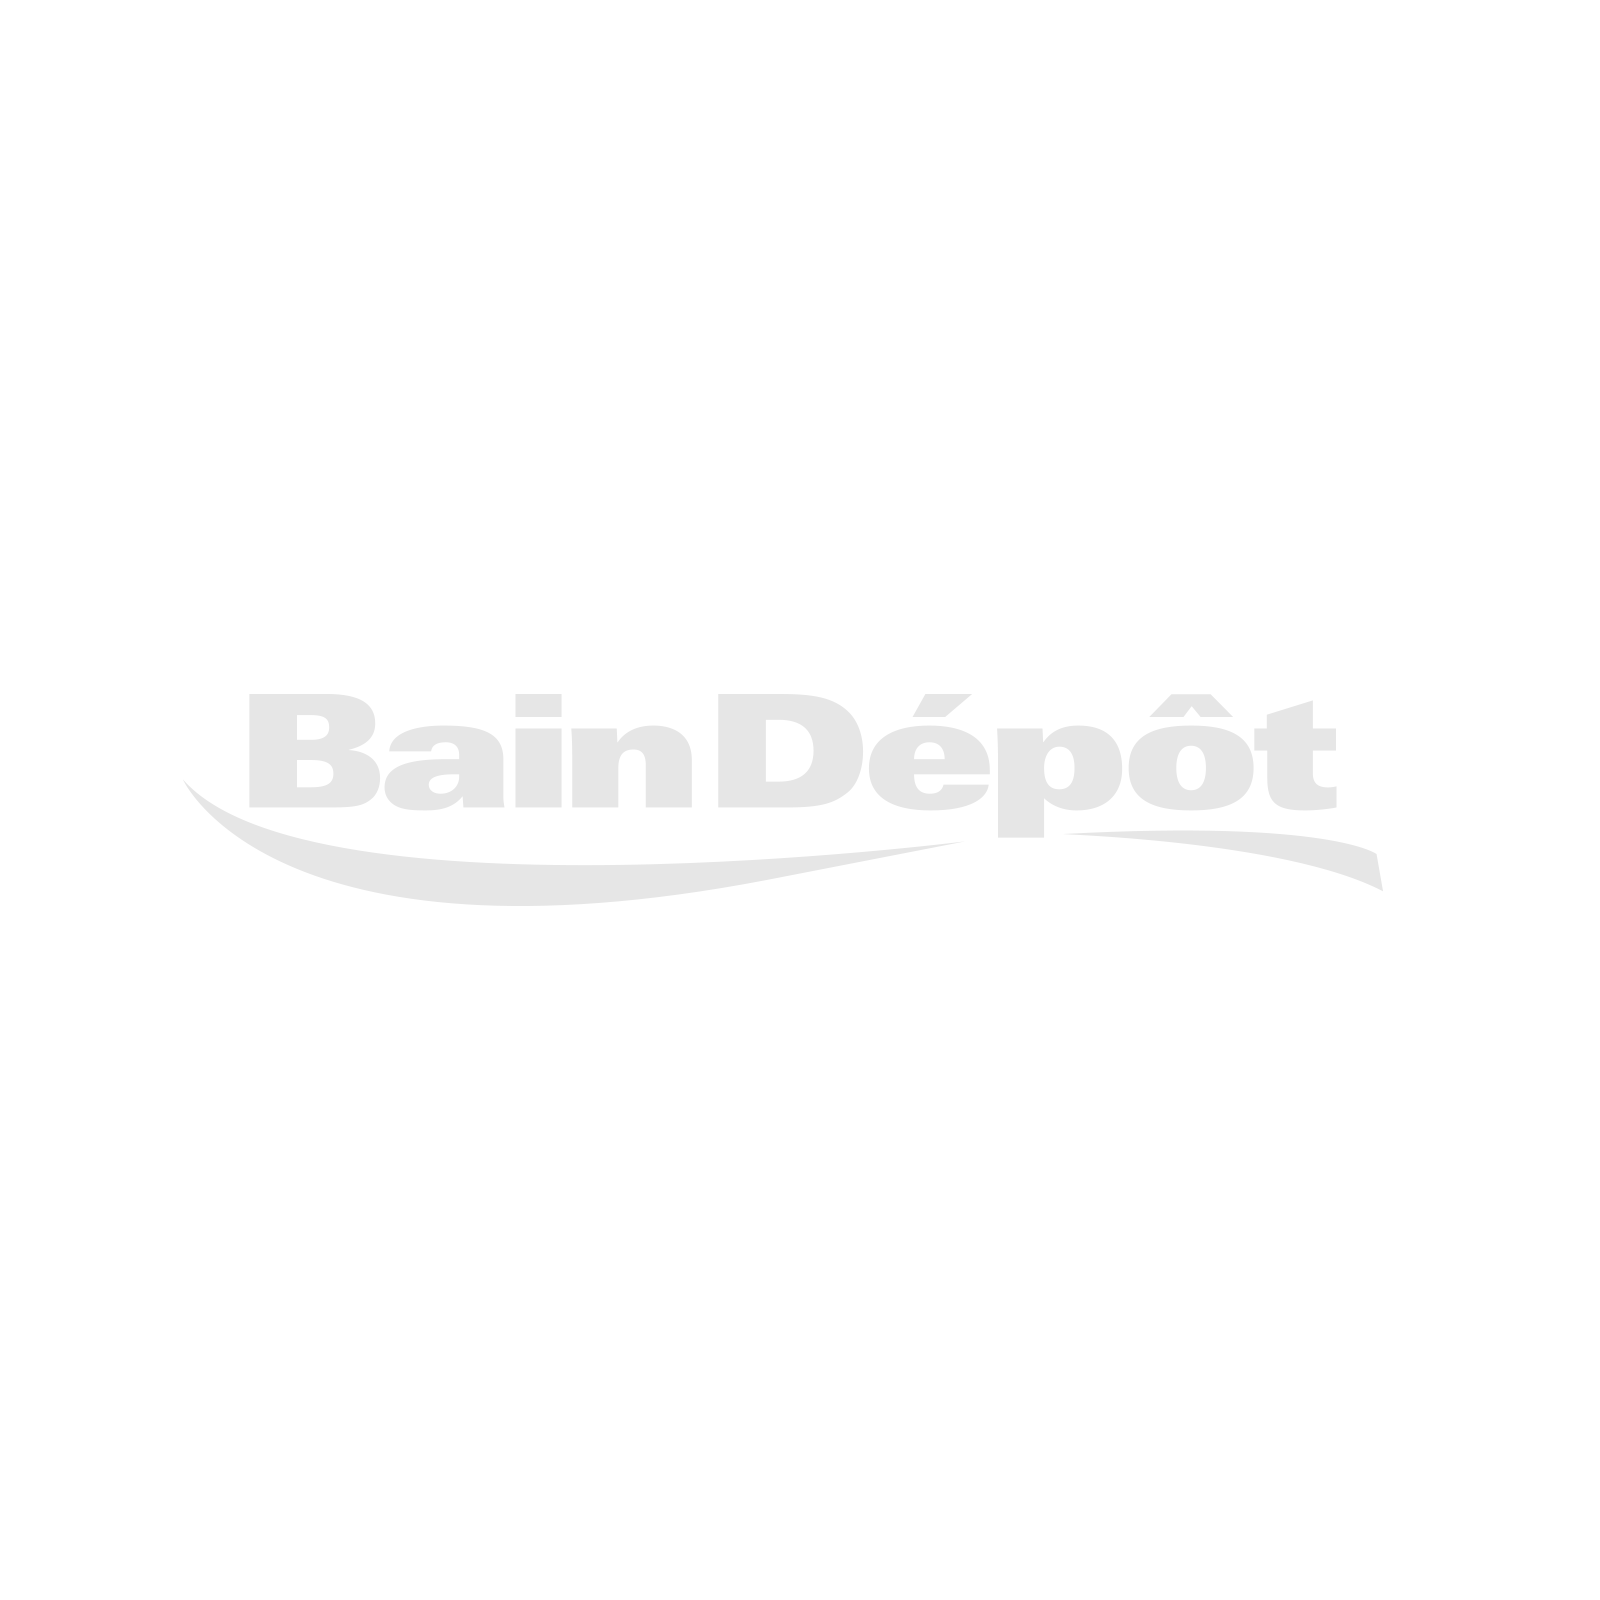 WARMUP - FOIL for carpet, laminate and wood floors covering 70 square feet